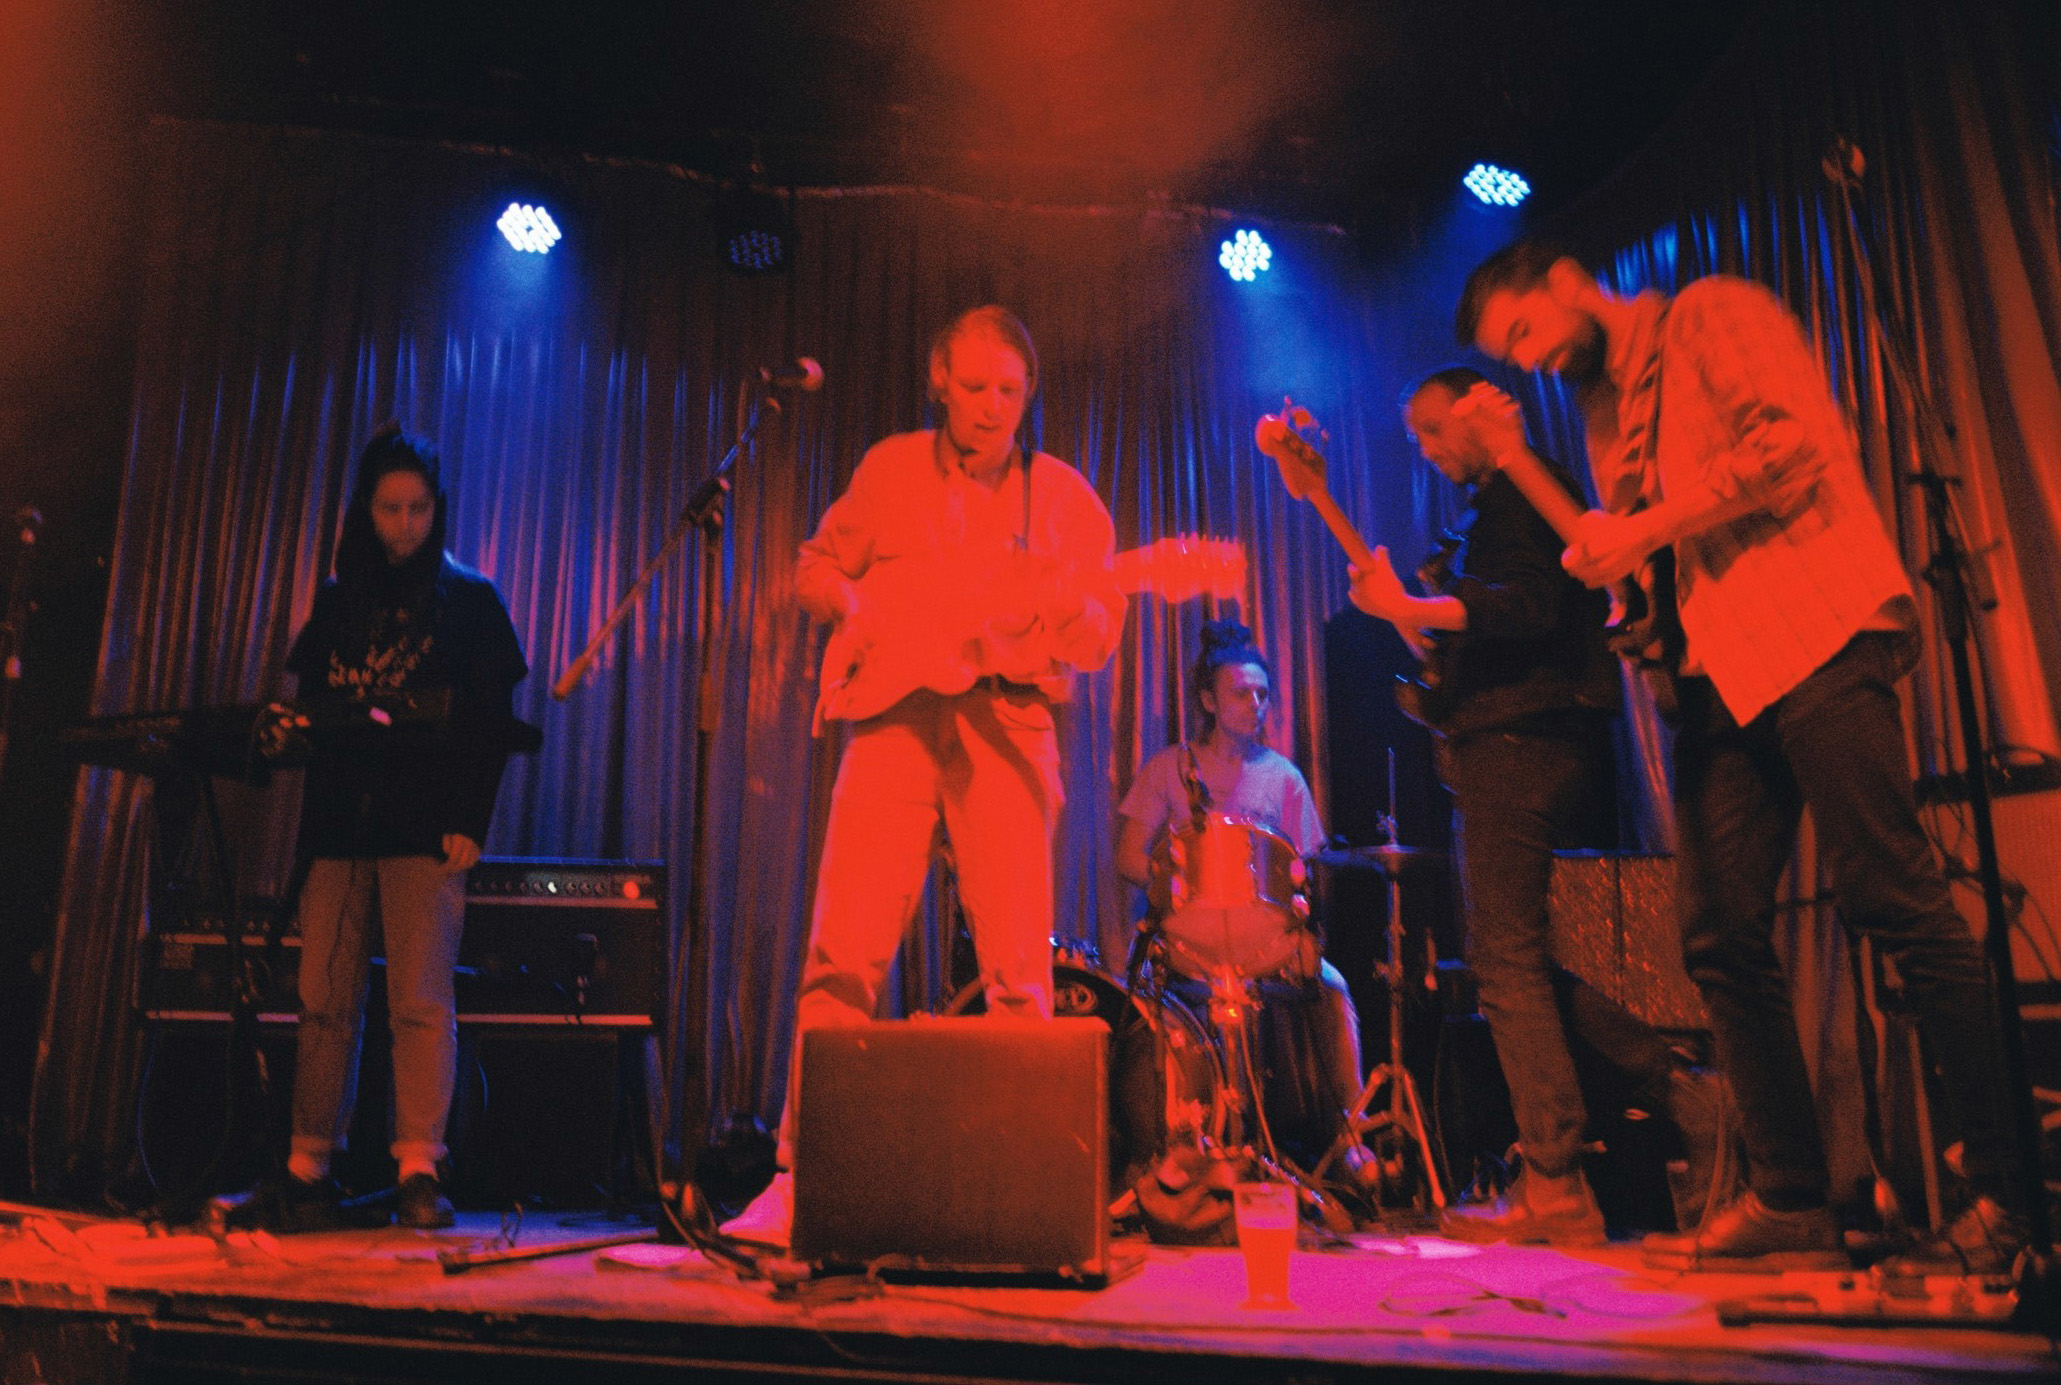 A Cool Sounds gig takes you on an hypnotic guitar-pop journey